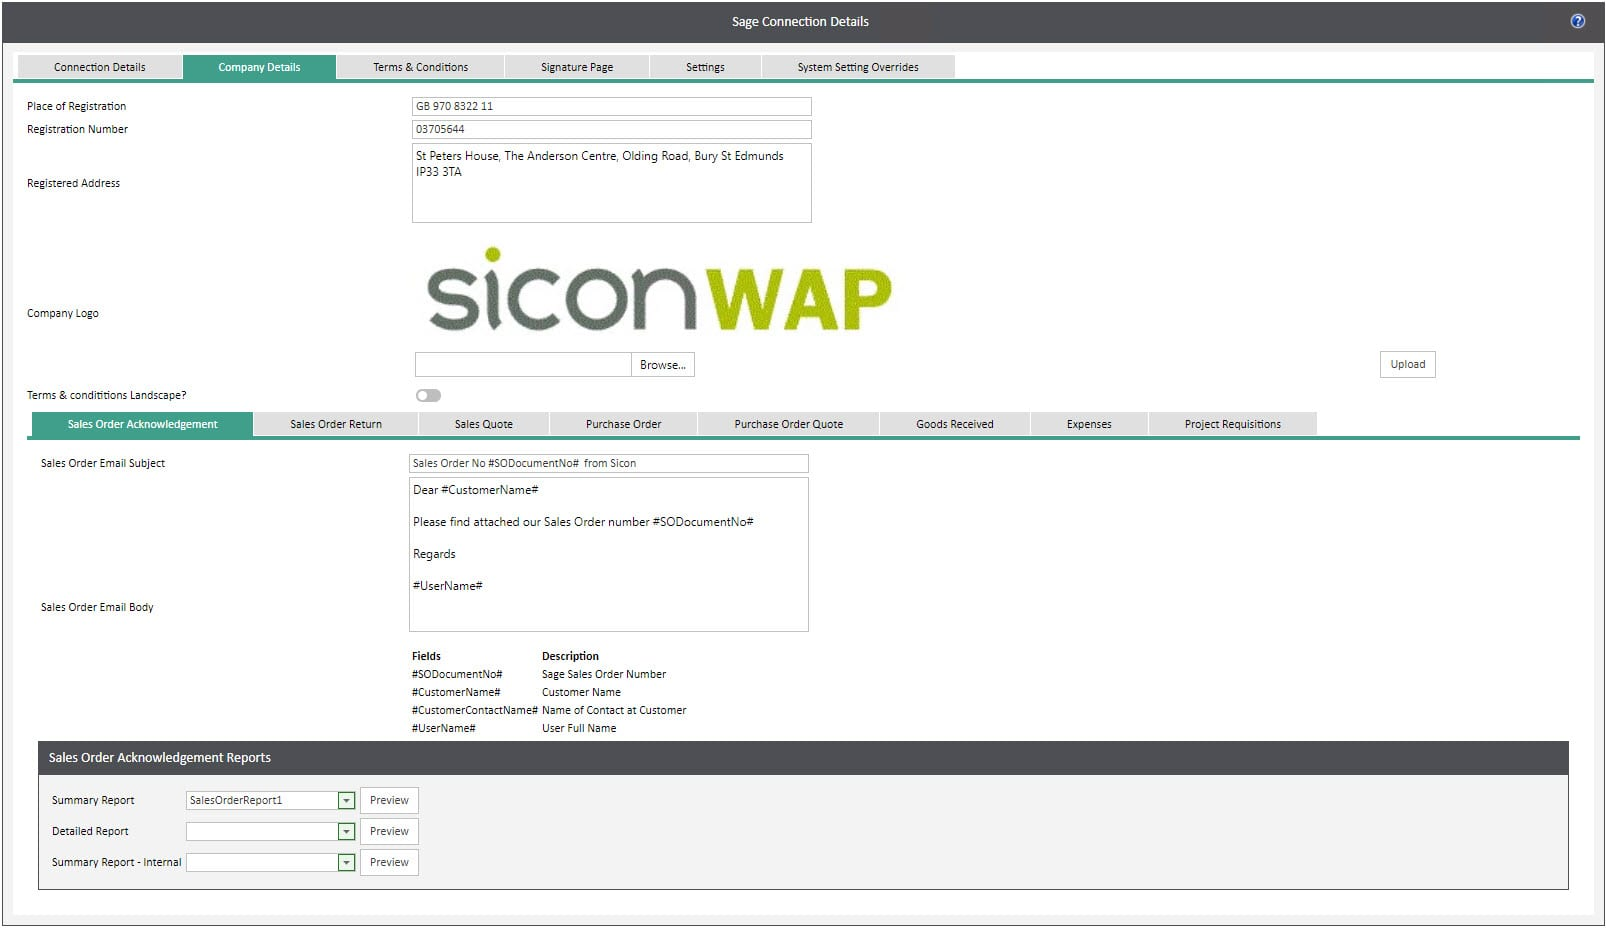 Sicon WAP System Settings Help and User Guide - WAP System HUG Section 29.2 Image 1